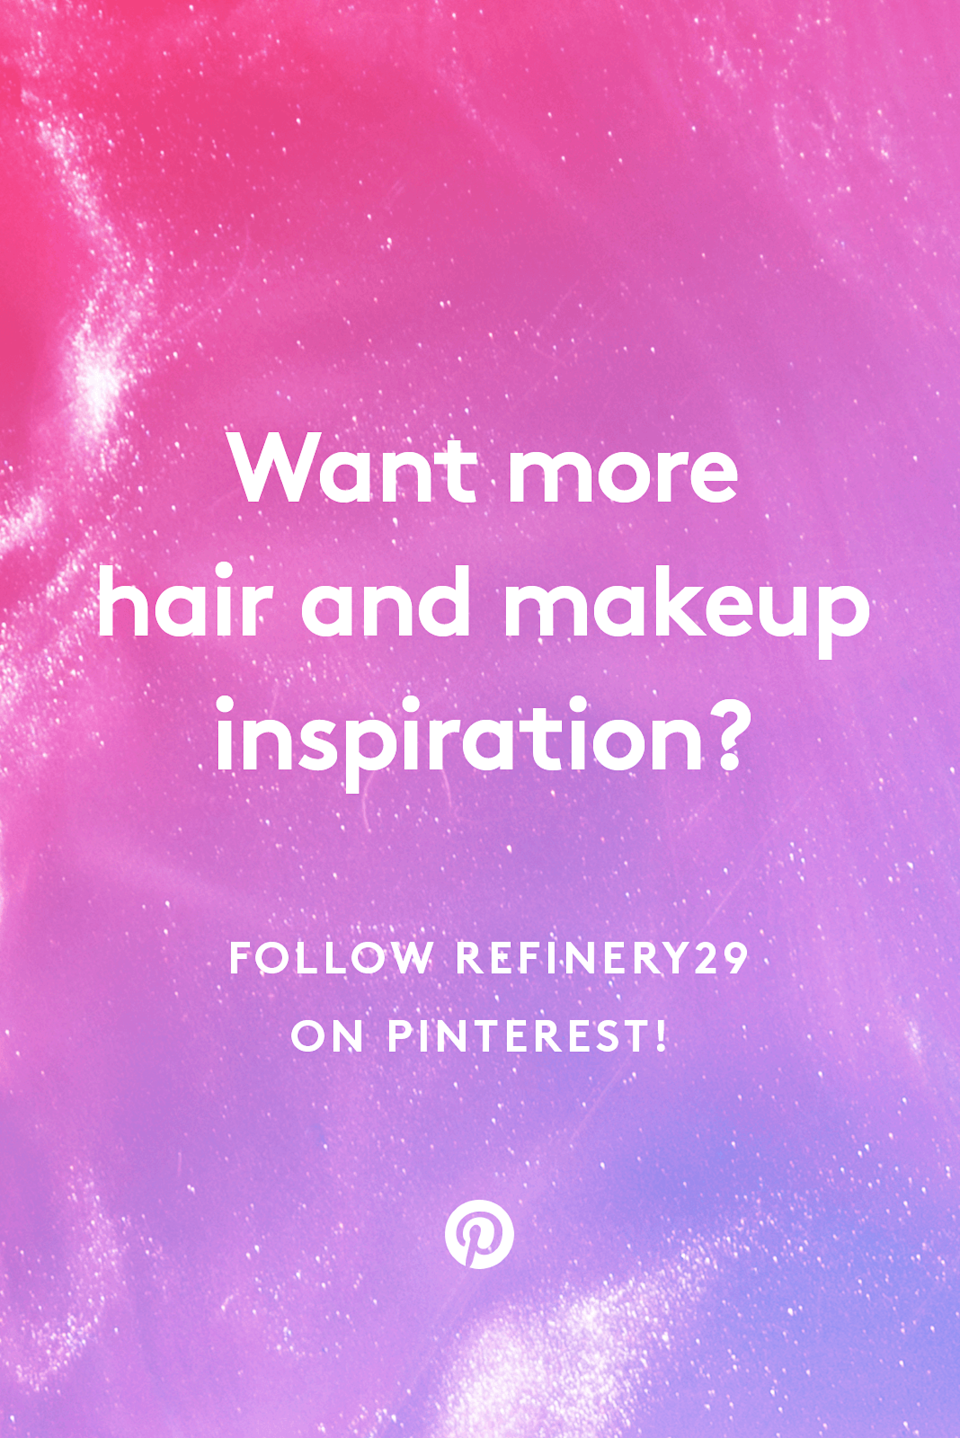 """<p>Like this post? There's more. Get tons of beauty tips, tutorials, and inspiration on the <a href=""""https://www.pinterest.com/refinery29/?auto_follow=true"""" rel=""""nofollow noopener"""" target=""""_blank"""" data-ylk=""""slk:Refinery29 Pinterest page"""" class=""""link rapid-noclick-resp"""">Refinery29 Pinterest page</a> — we'll see you there!</p>"""